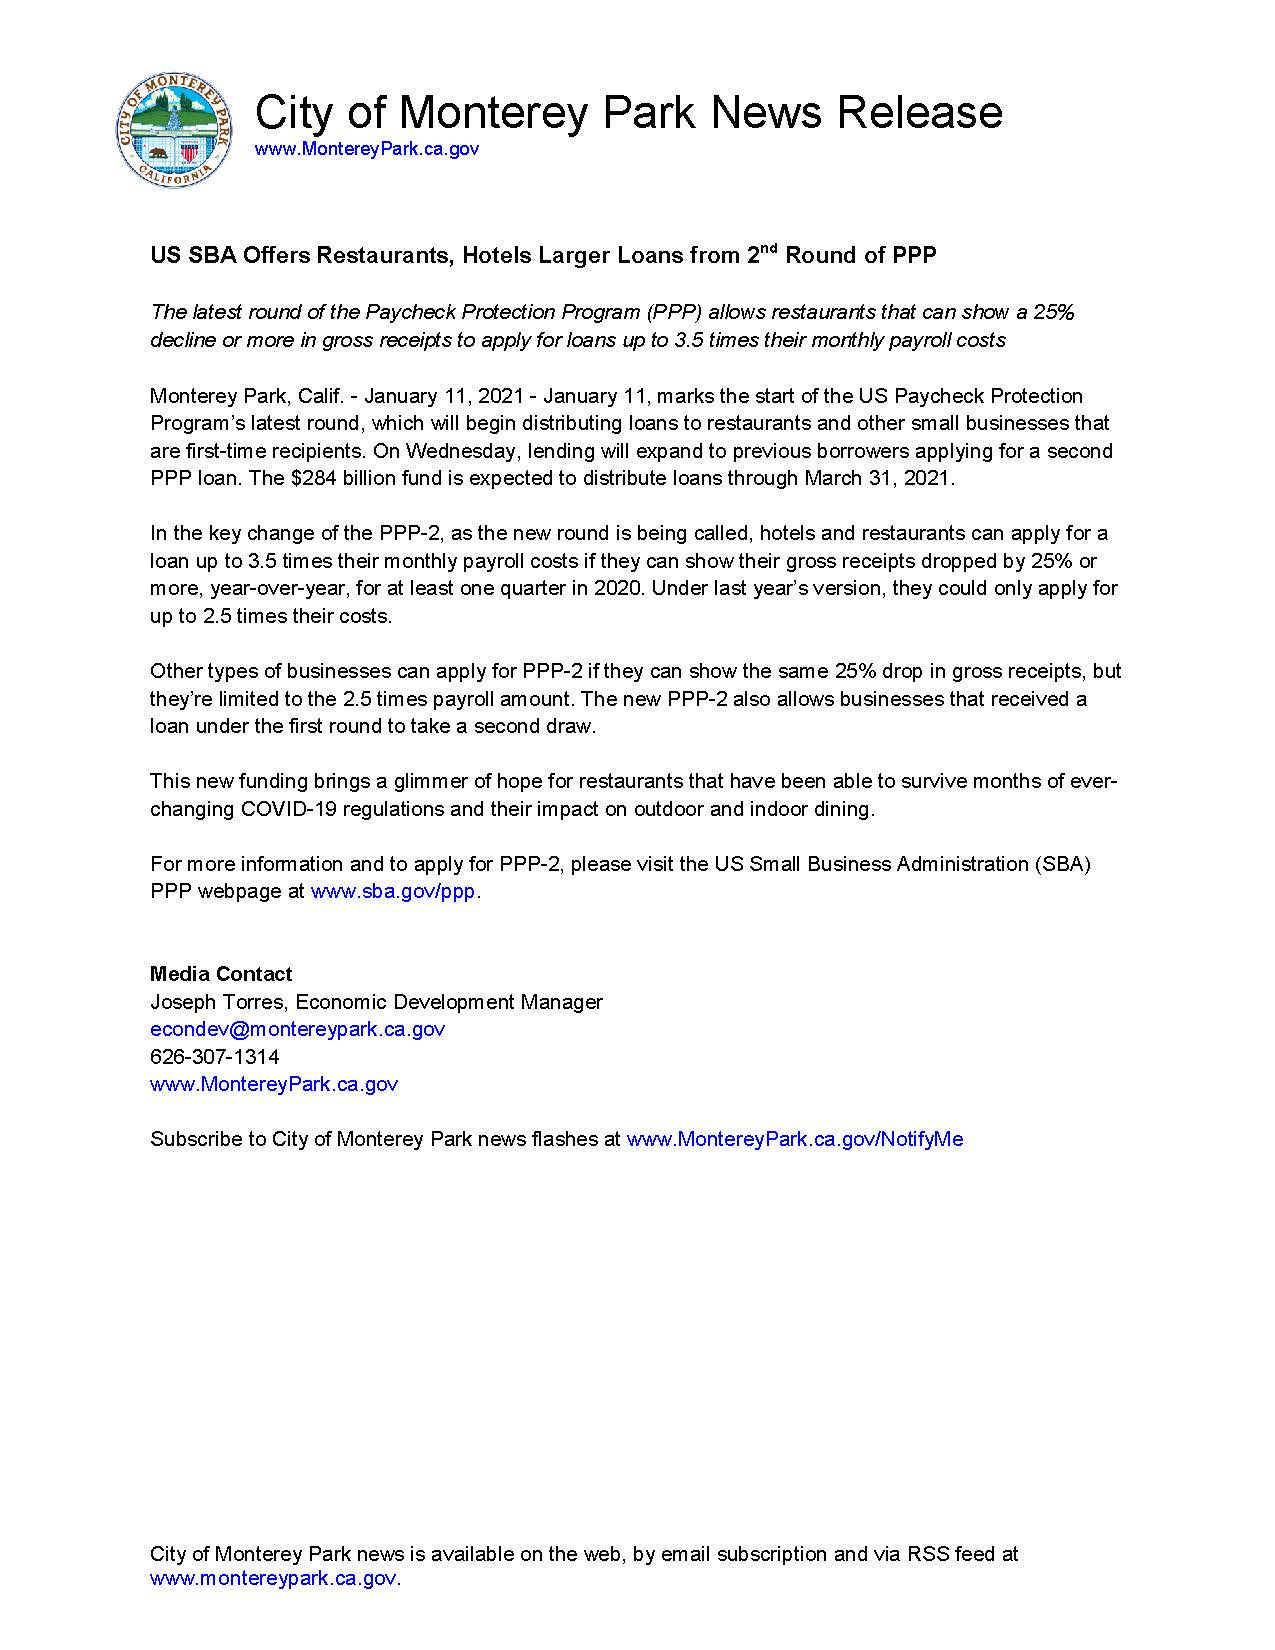 MPK News Release - US SBA Offers Restaurants, Hotels Larger Loans from 2nd Round of PPP 1-11-21